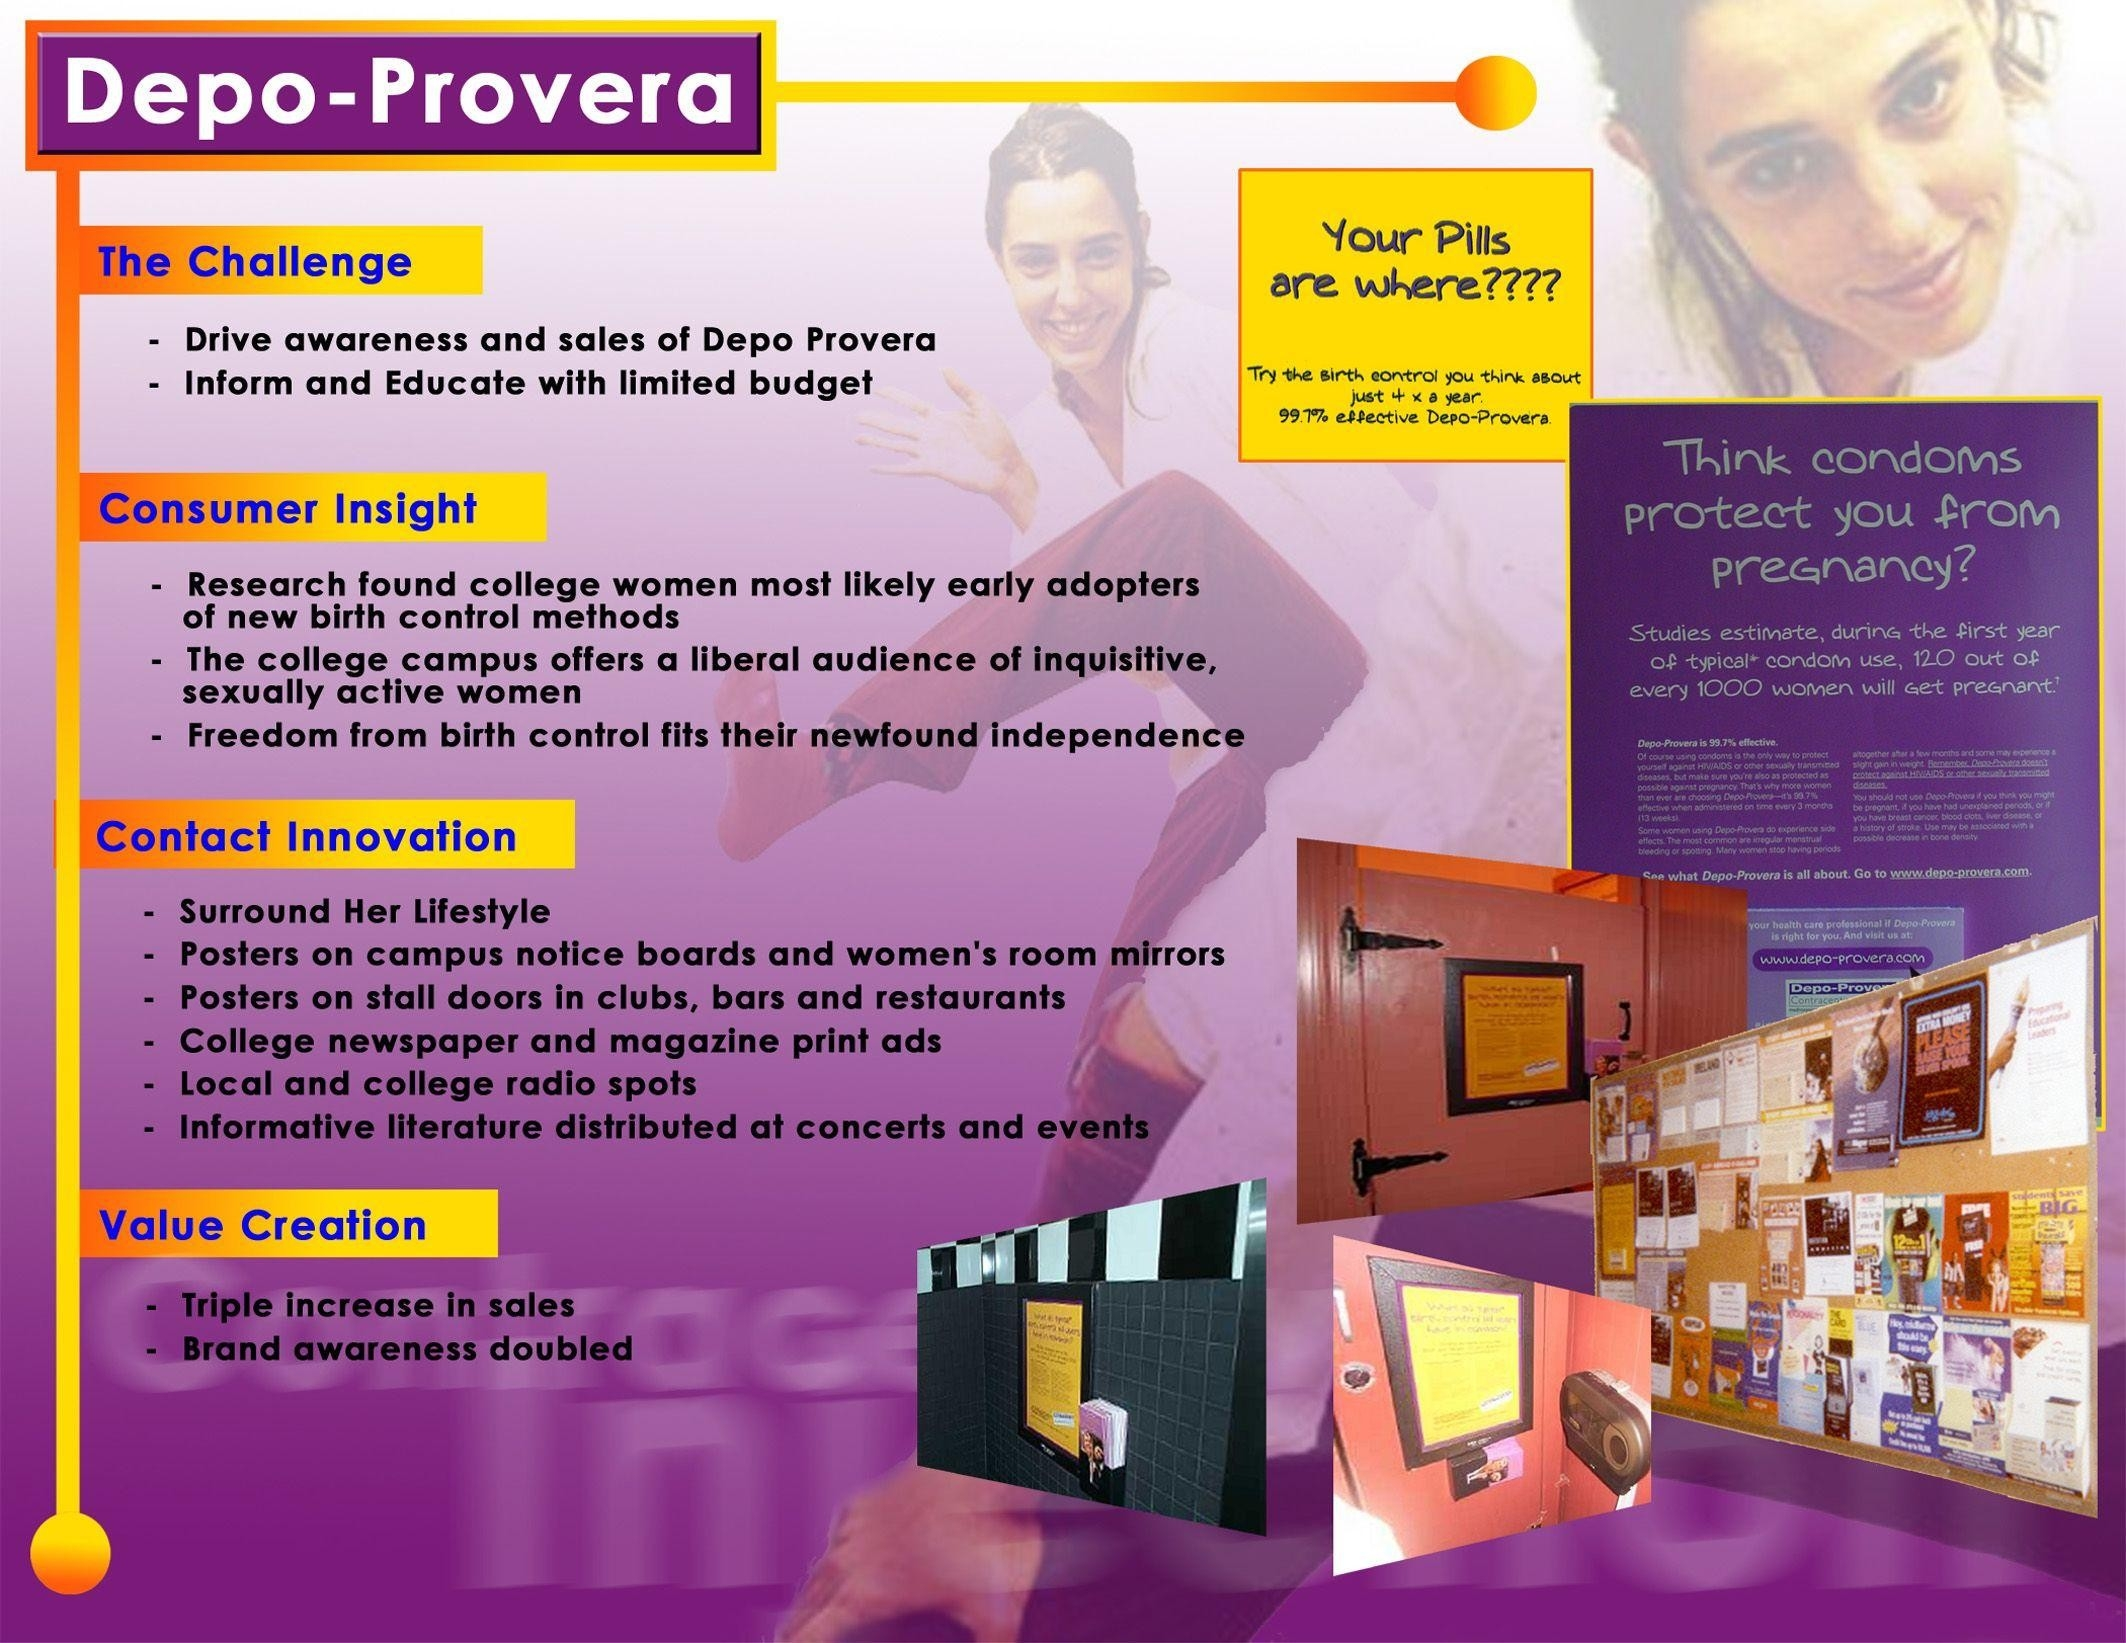 Adeevee | Only Selected Creativity - Pharmacia Depo Provera  Depot Prover Calcul